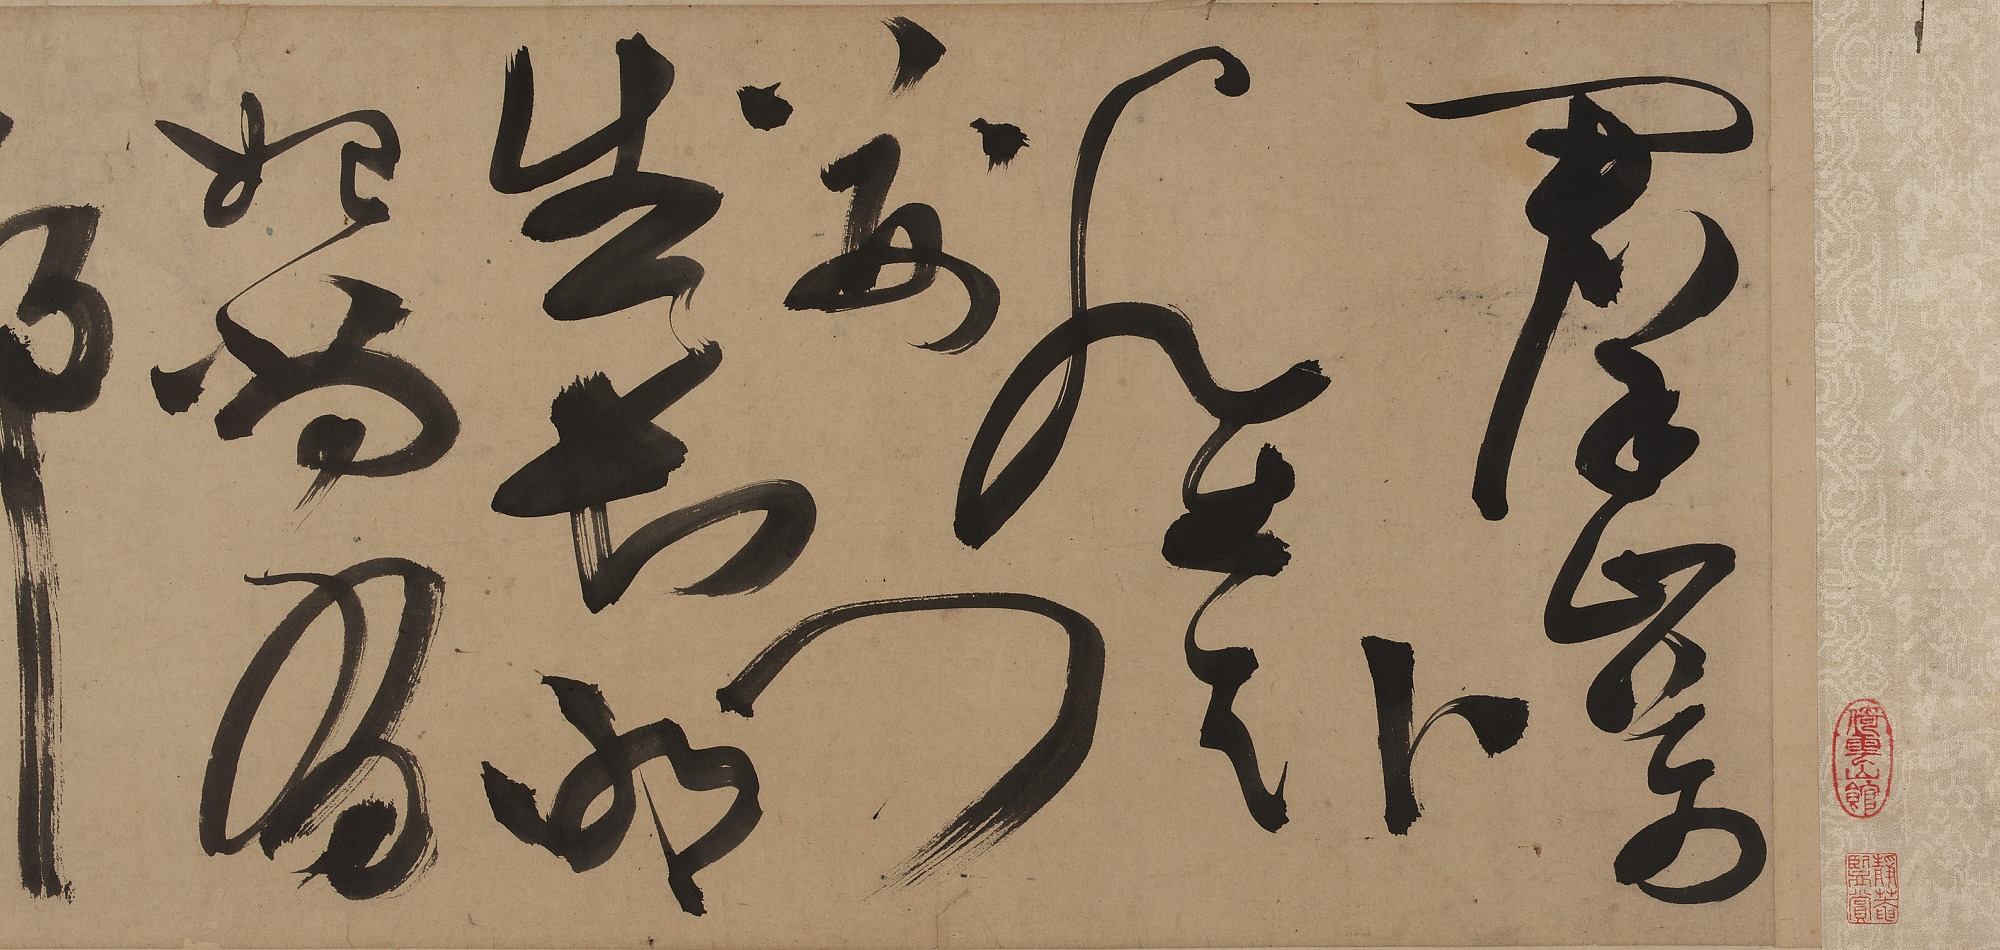 section 1: Three poems by Du Fu in wild-cursive script